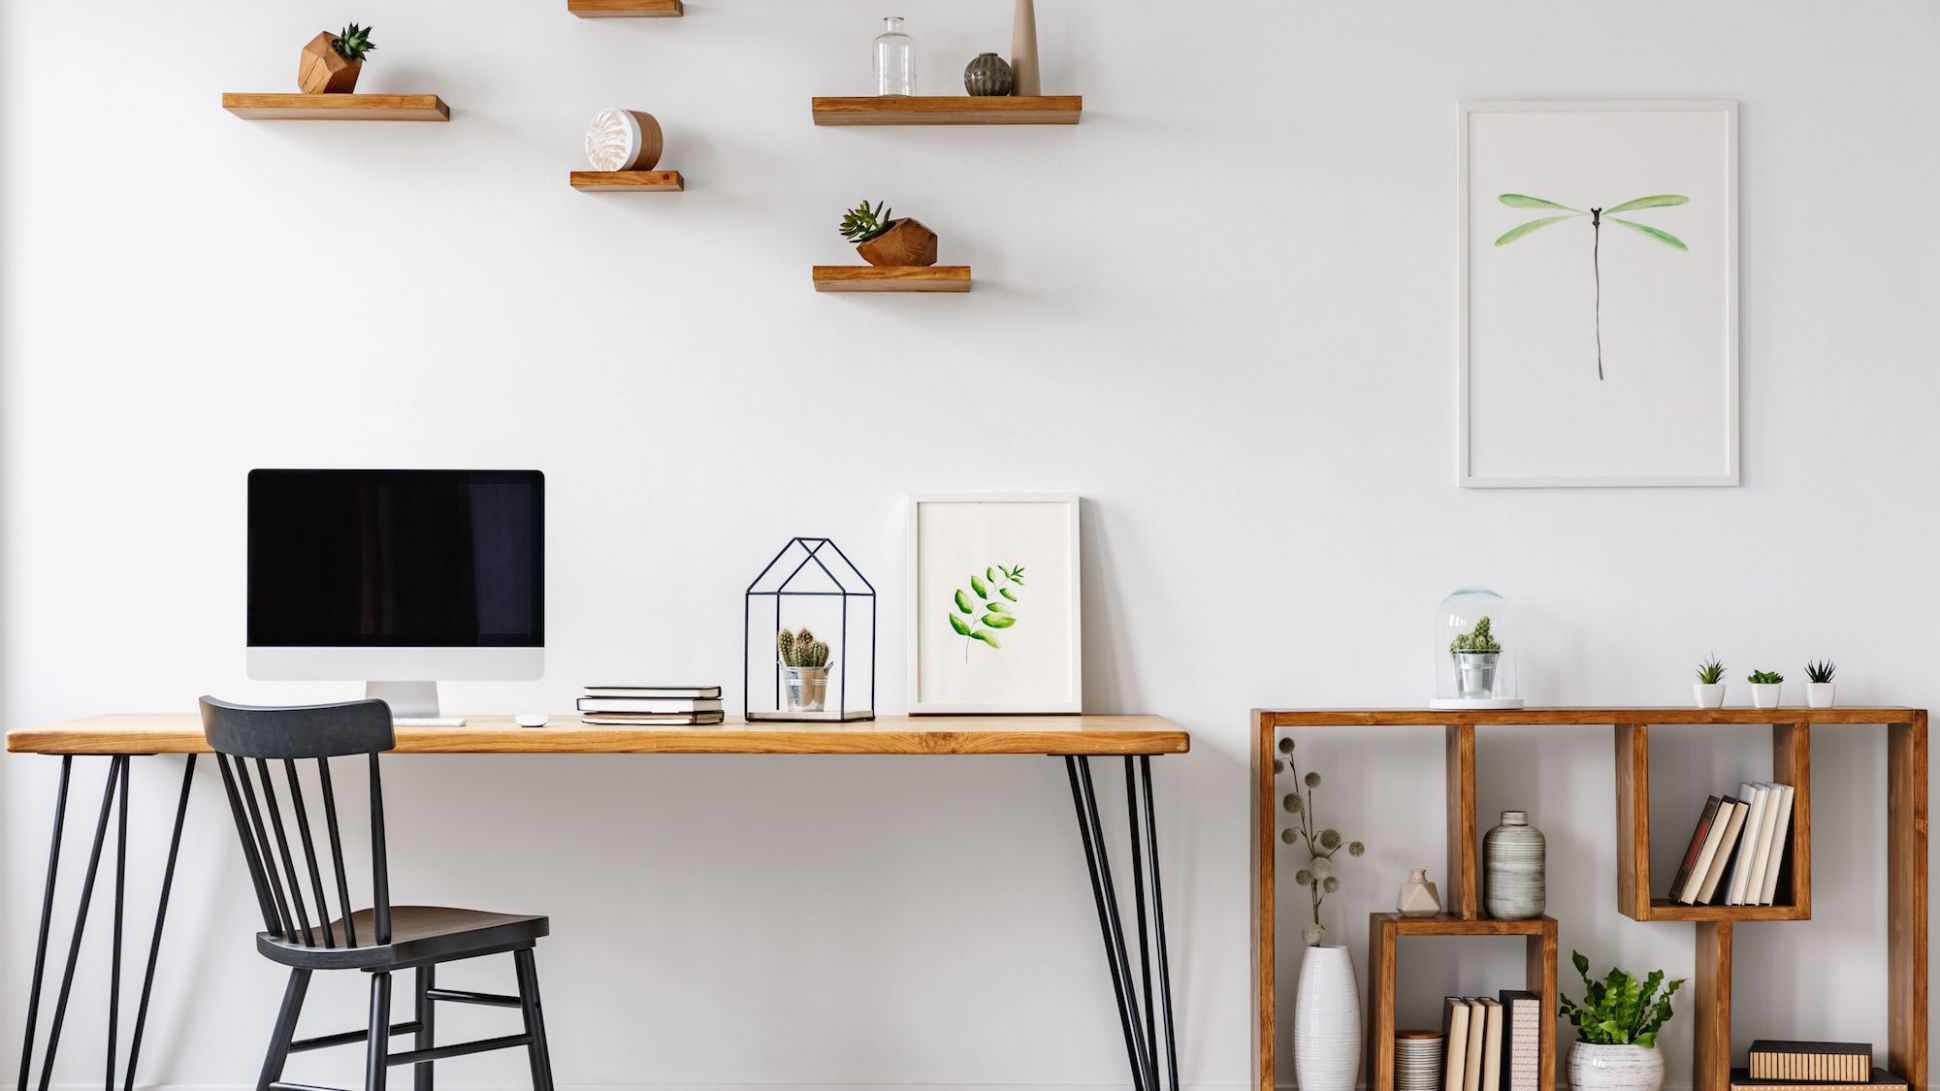 10 Best Office Wall Decor Ideas and Where to Buy | Fairygodboss